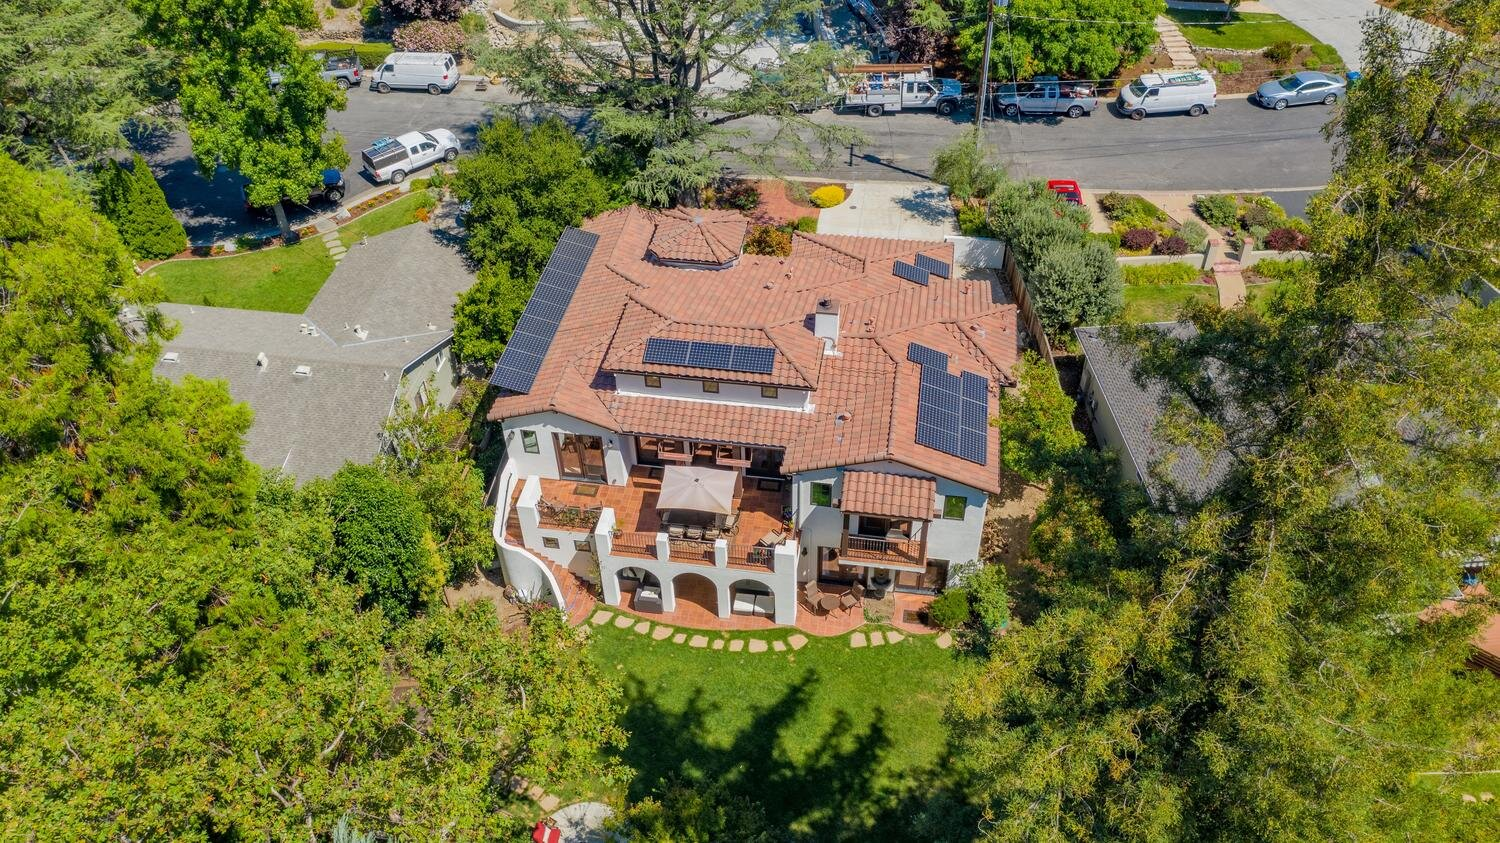 16021 Winterbrook Rd Los Gatos-large-048-074-Aerial Back of House Top View-1500x843-72dpi.jpg